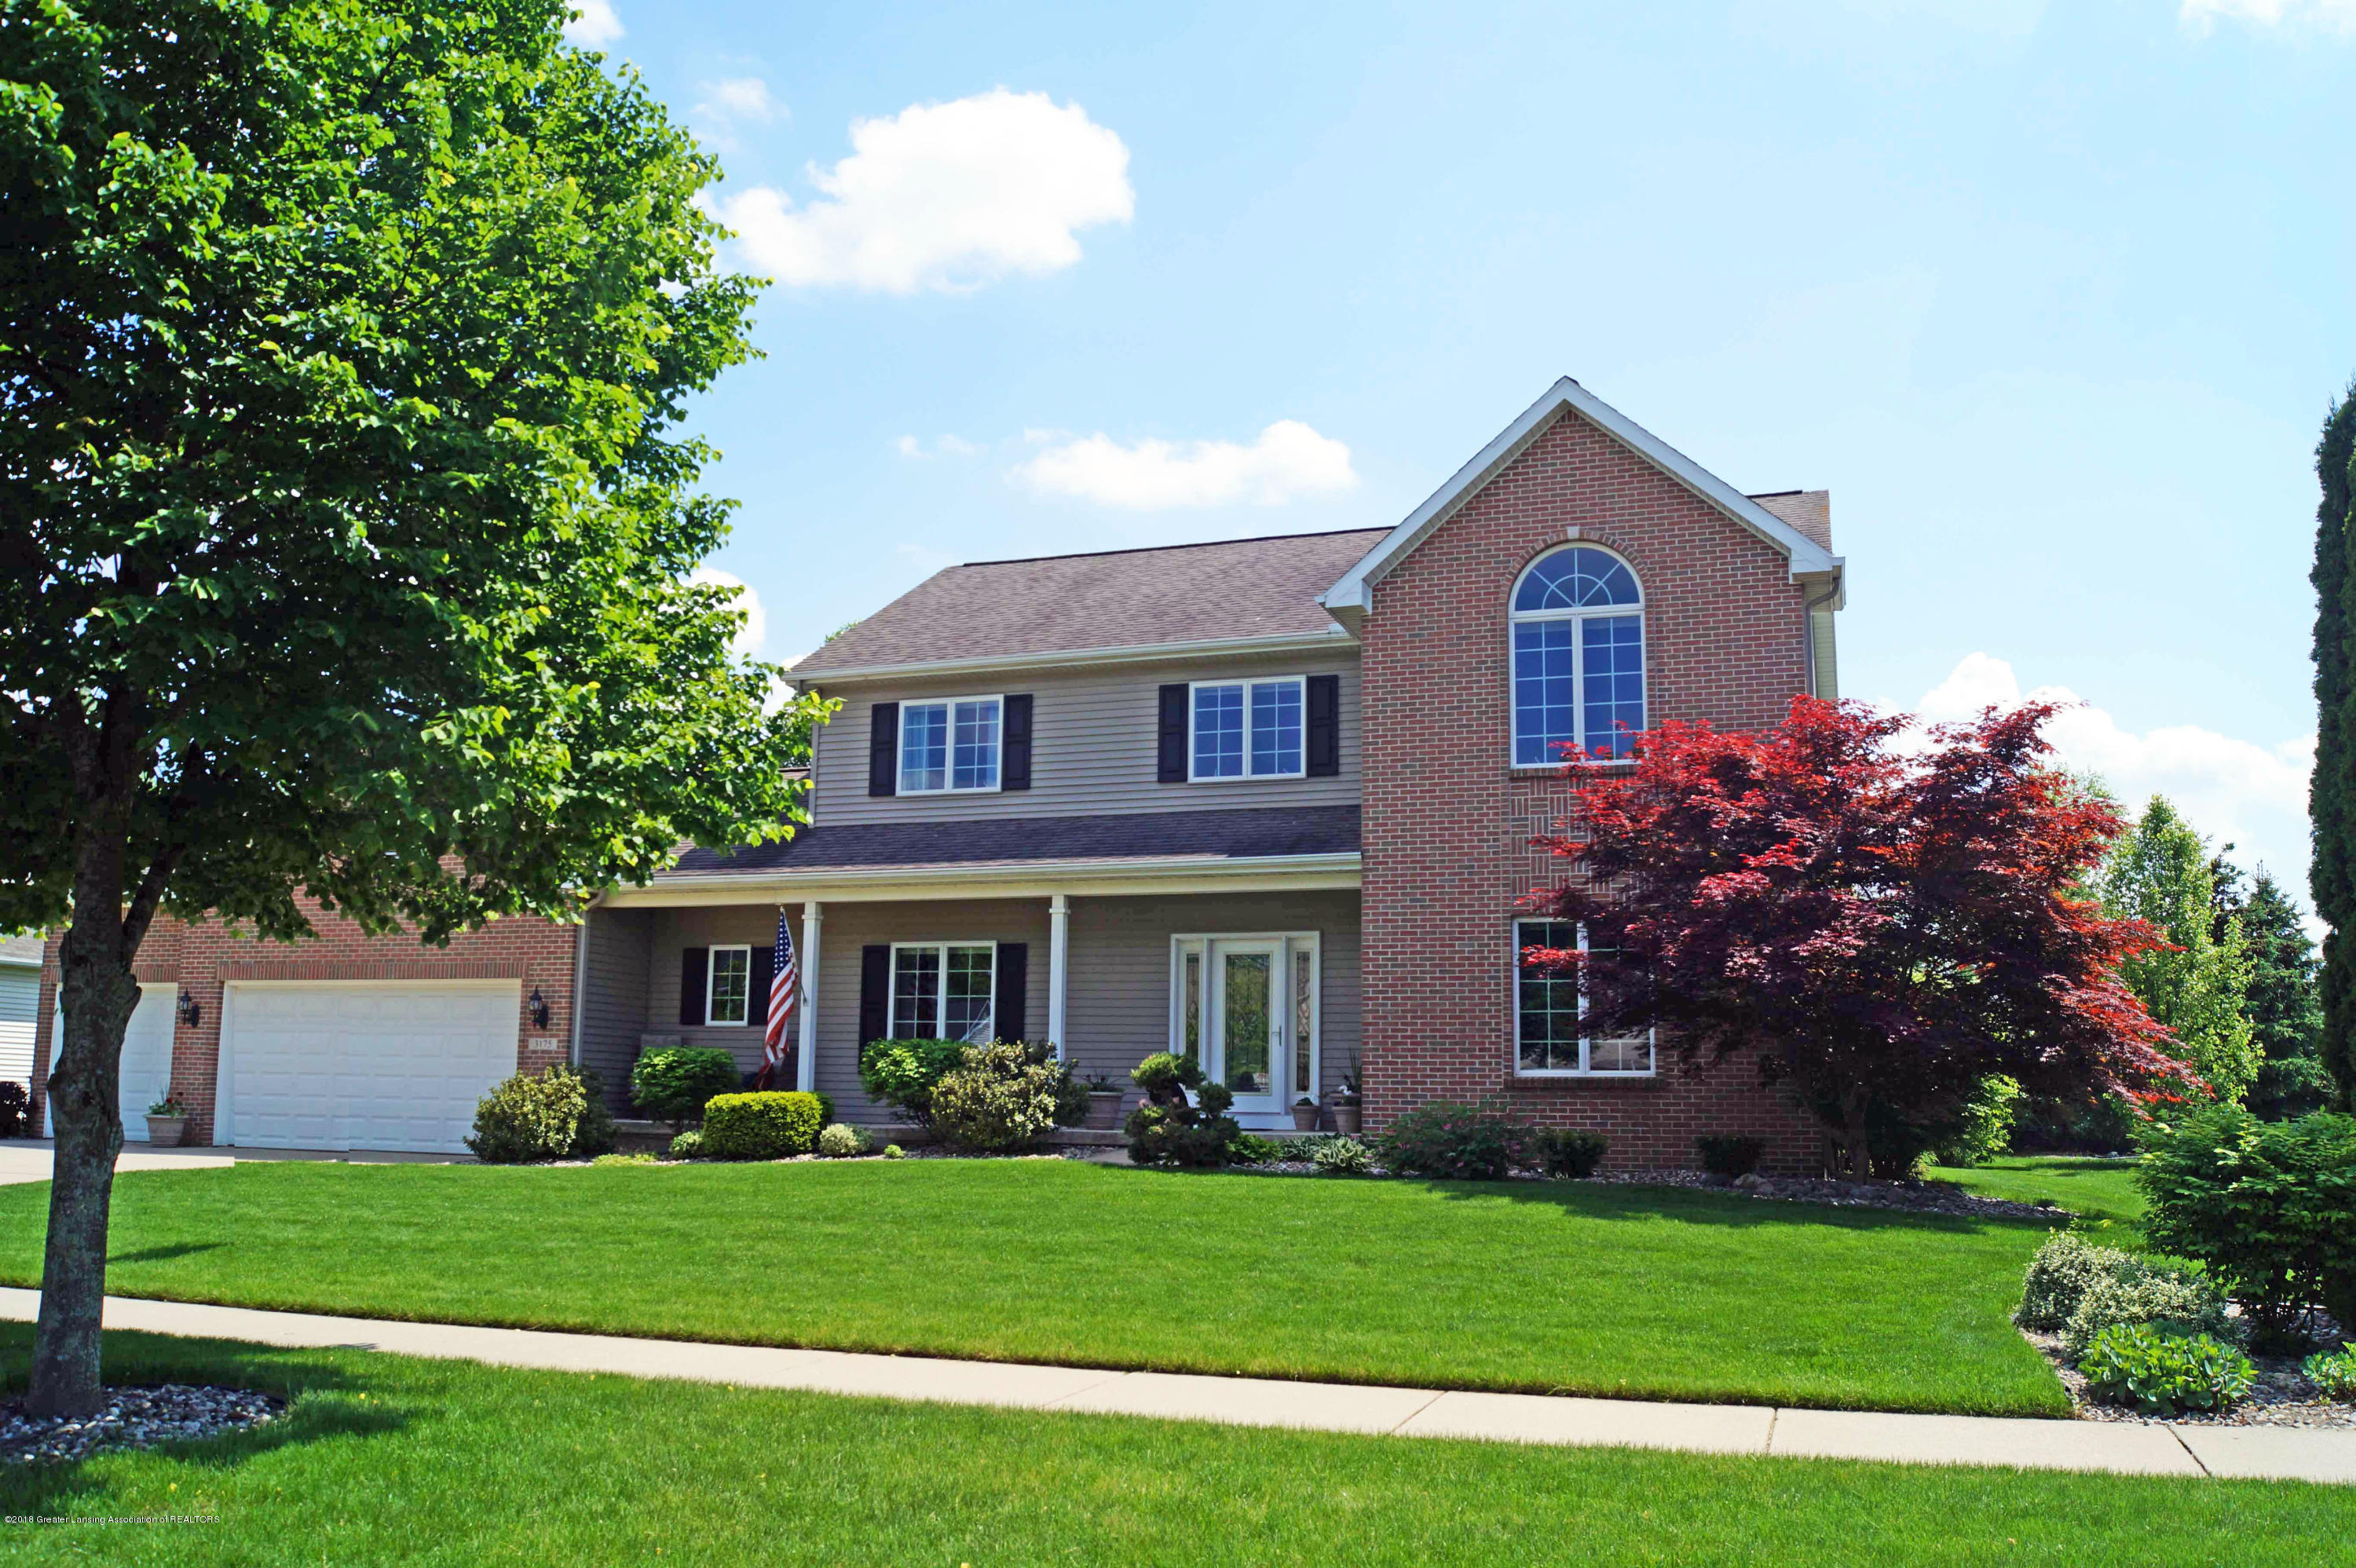 3175 Crofton Dr - FRONT - 1